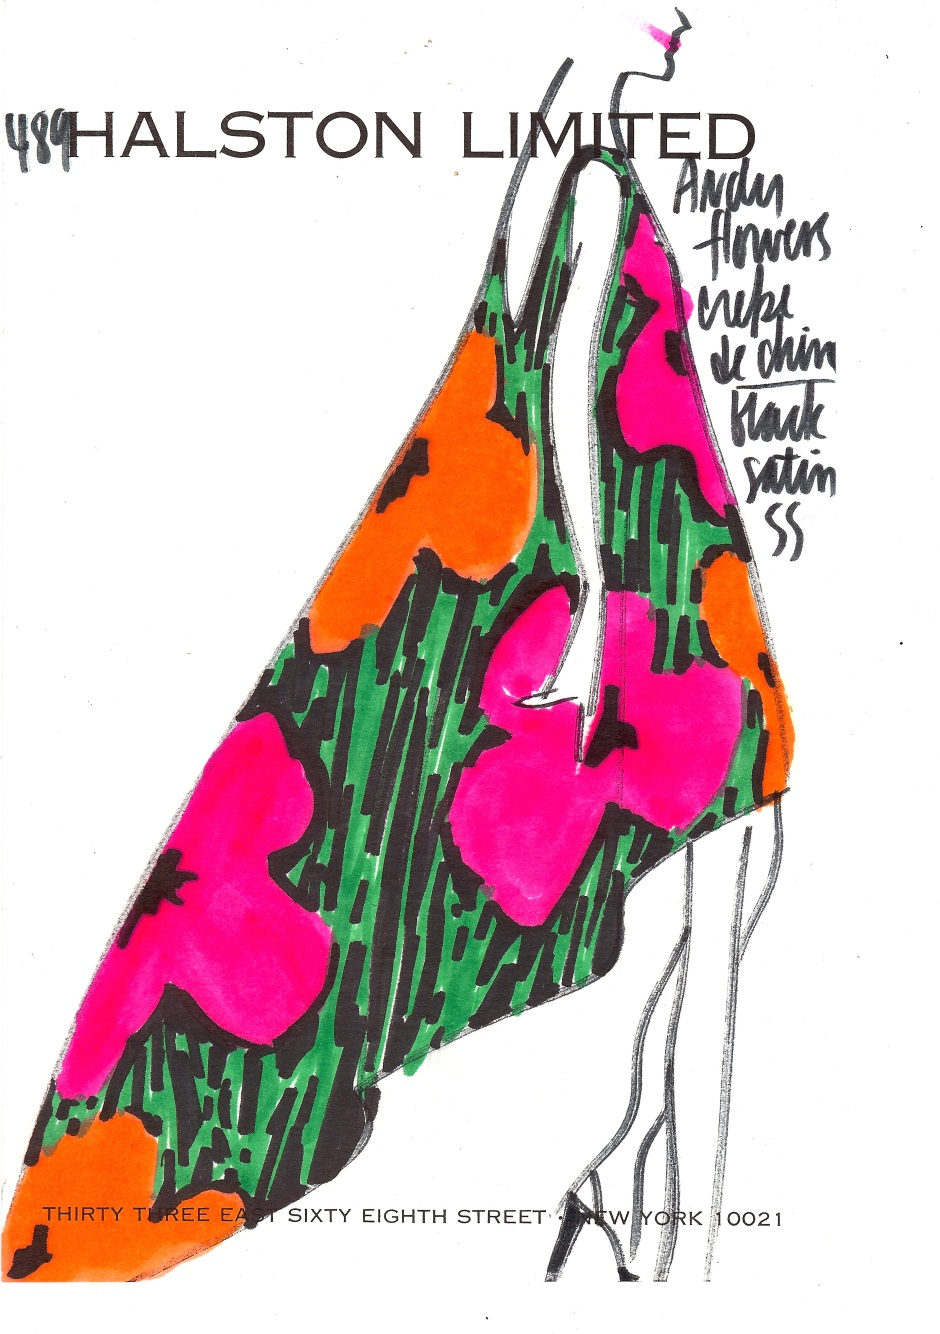 5-Halston LTD, Warhol flowers